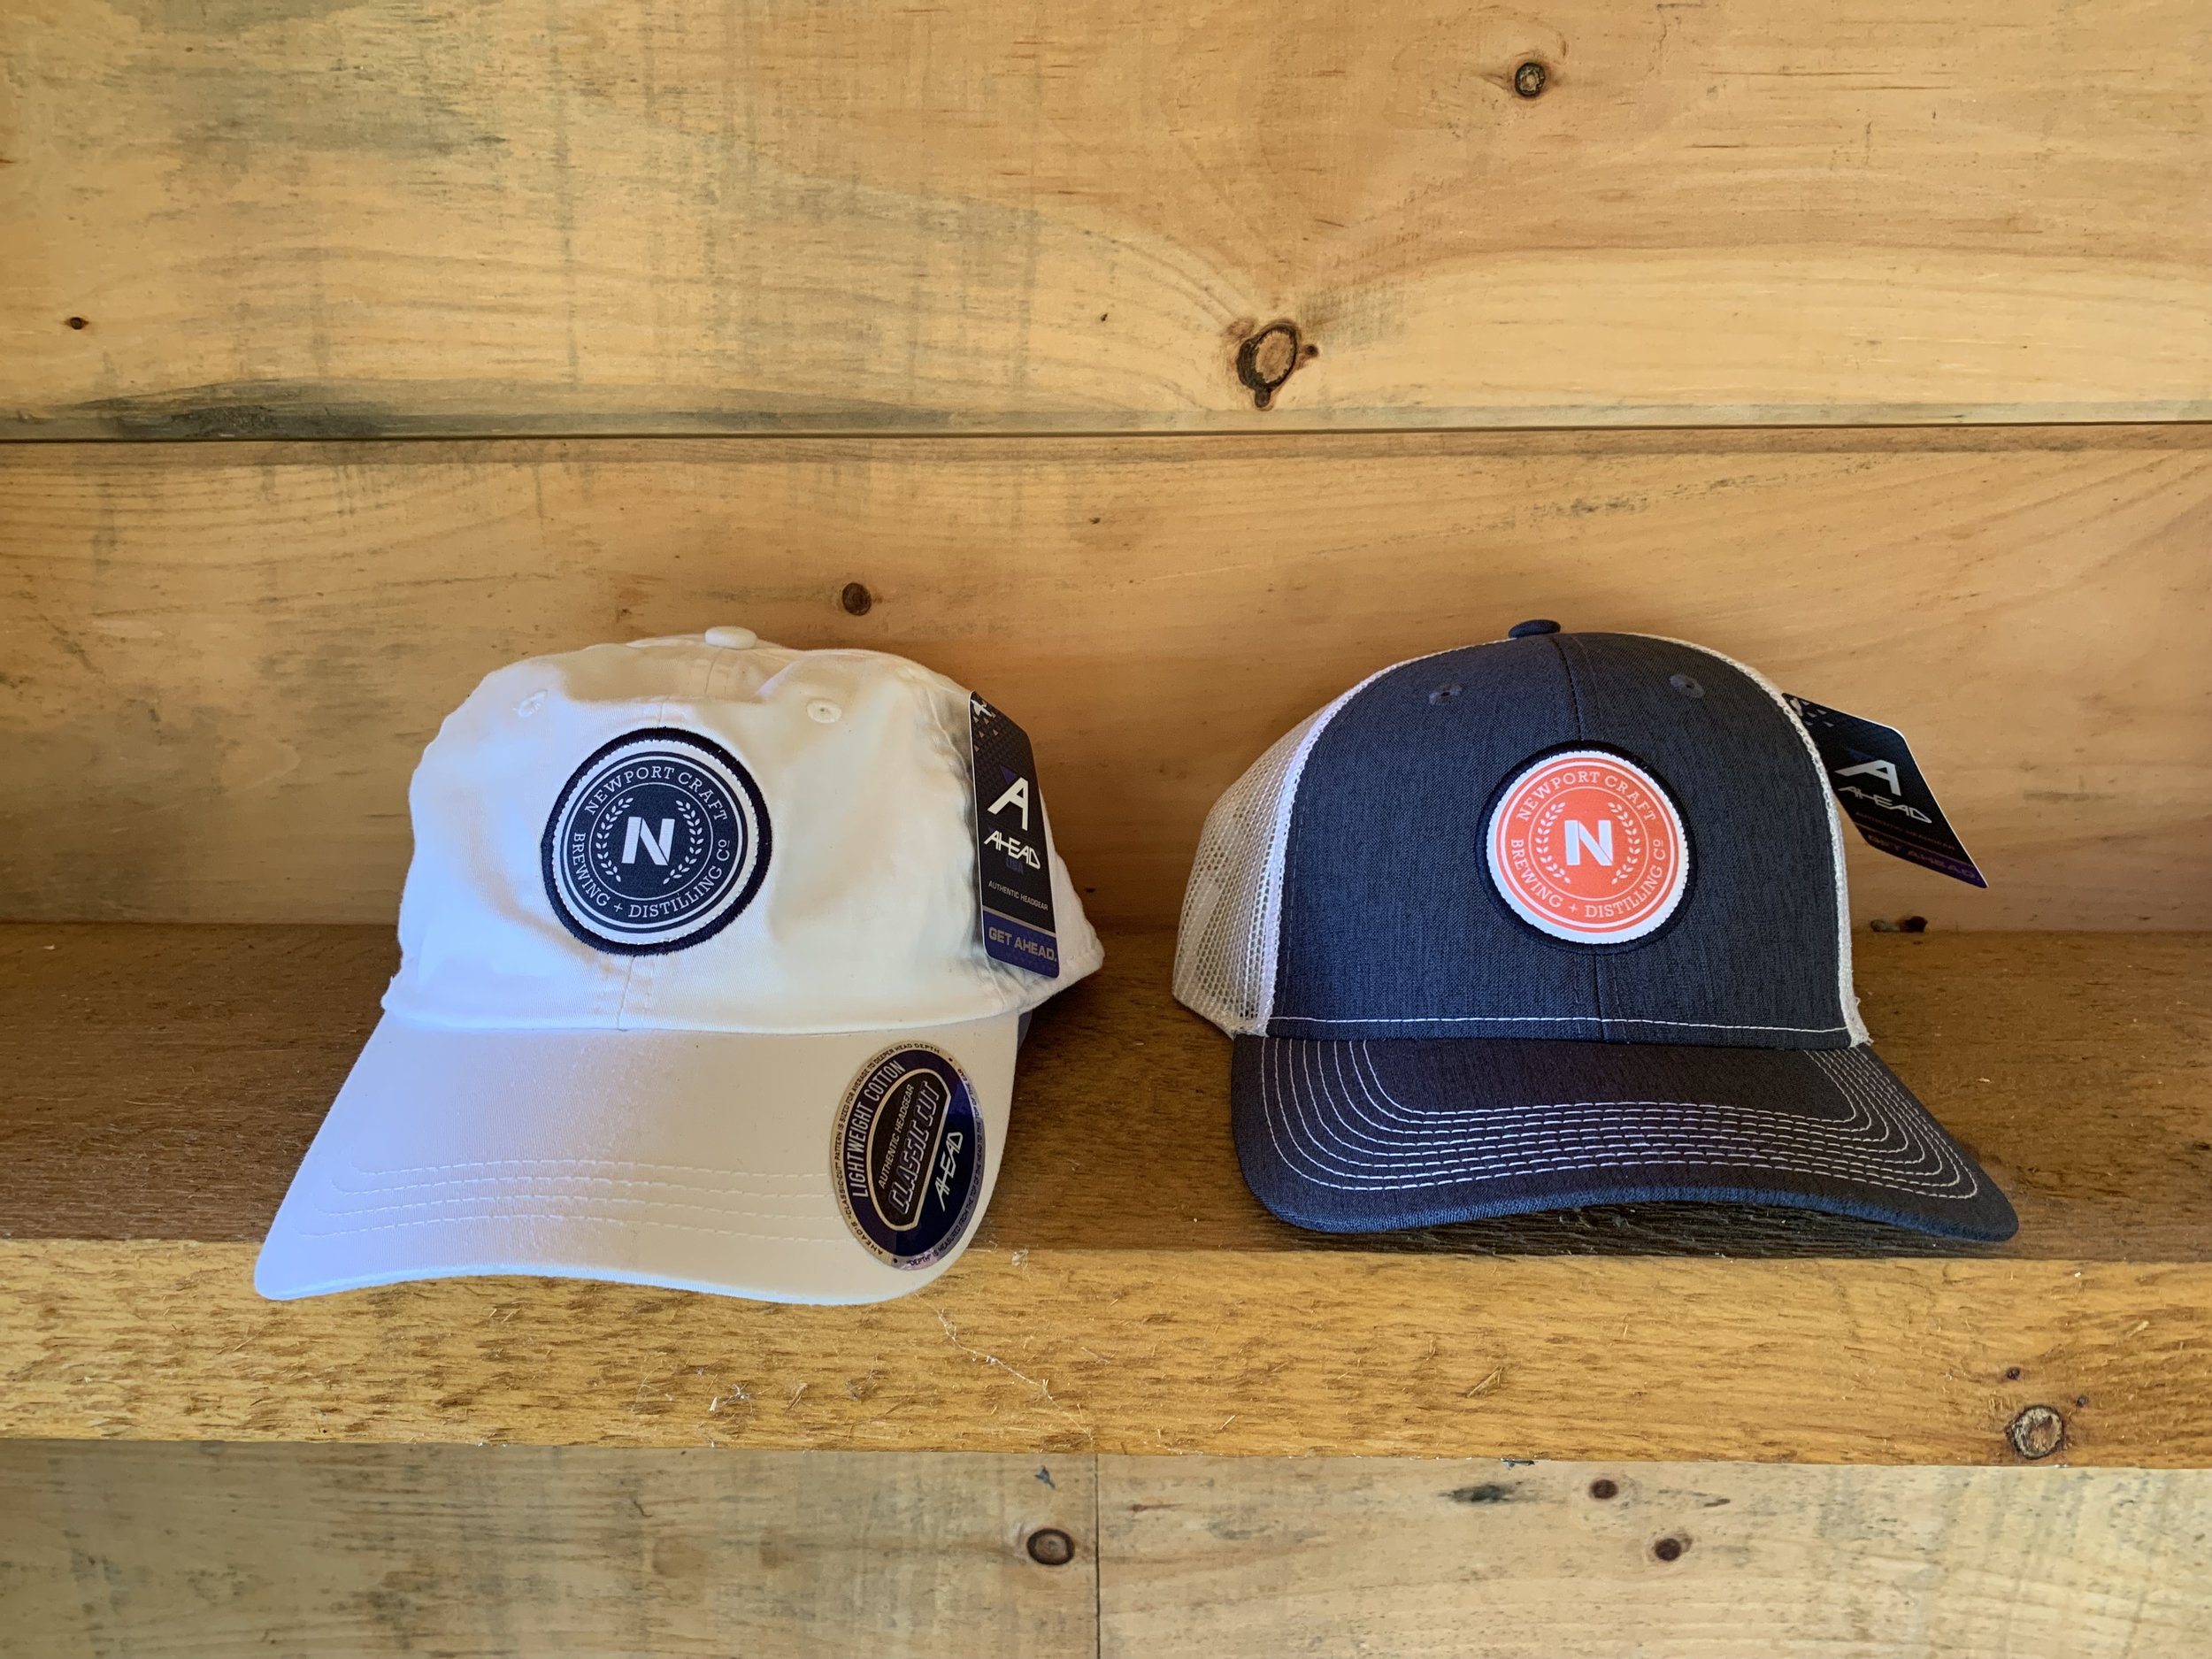 Hats $20 - Newport Craft hats available in white or navy blue netted.